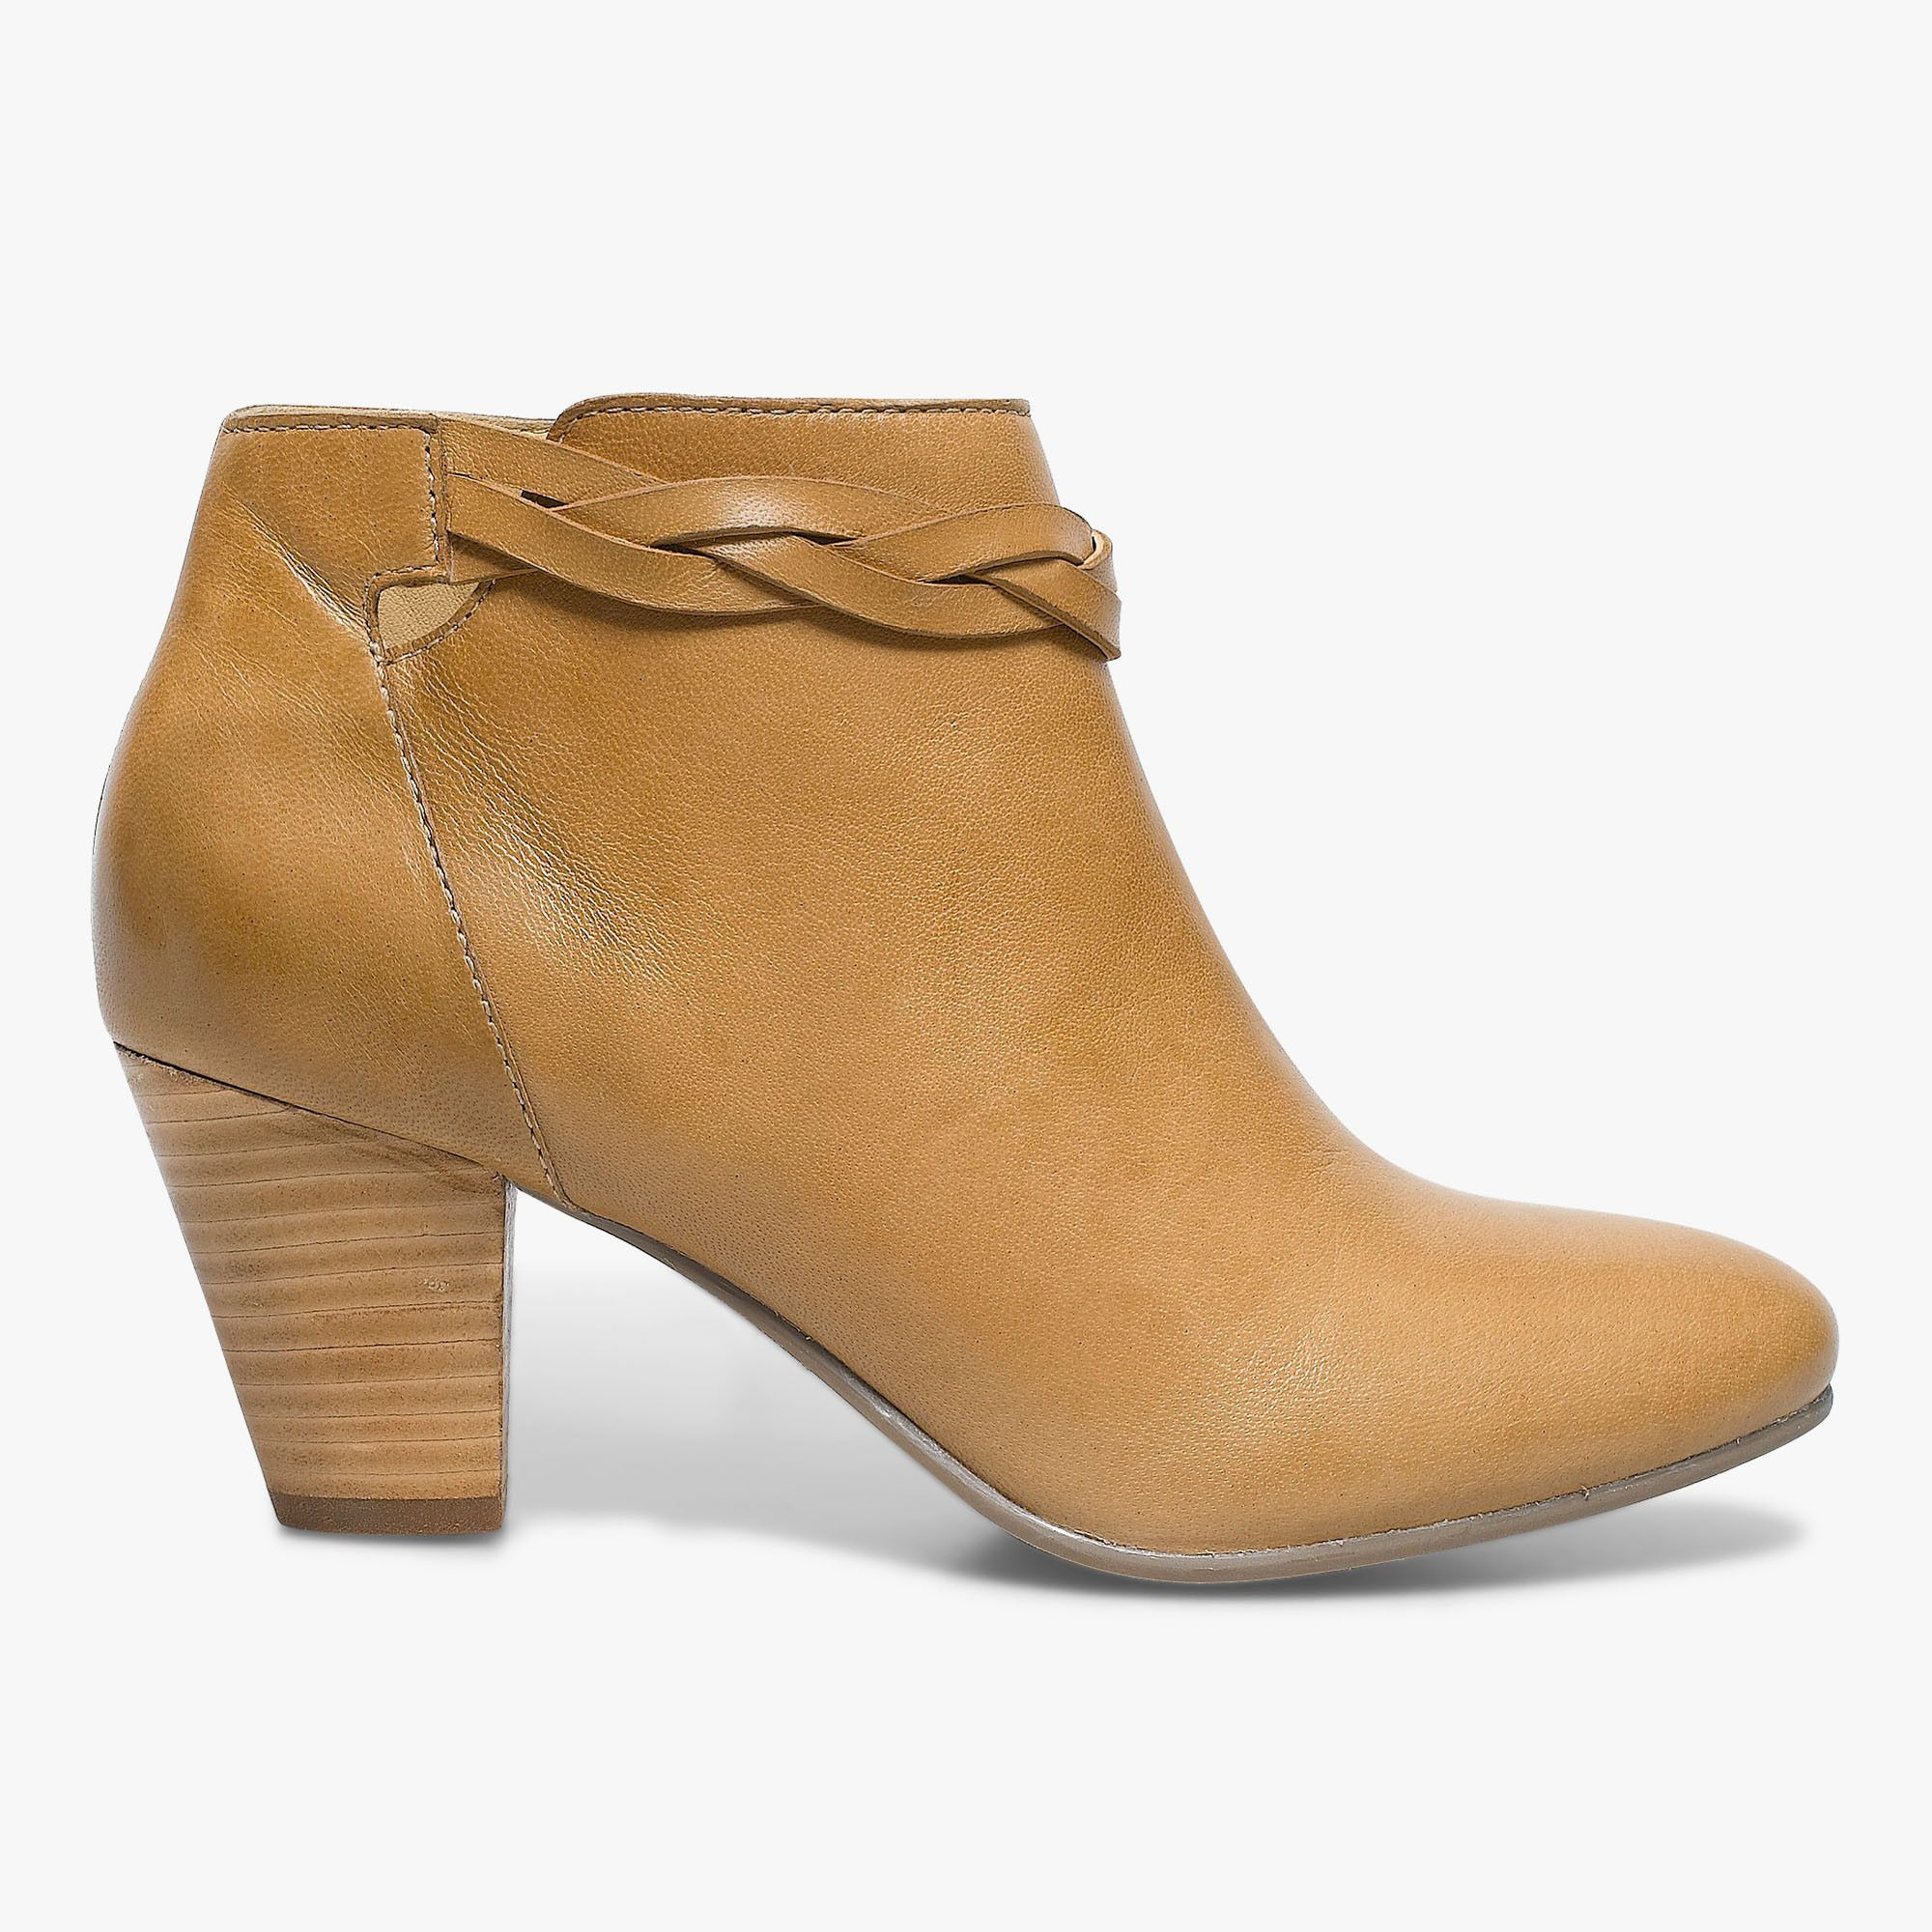 boots camel en cuir bocage 125€ | chaussure waw | pinterest | cuir